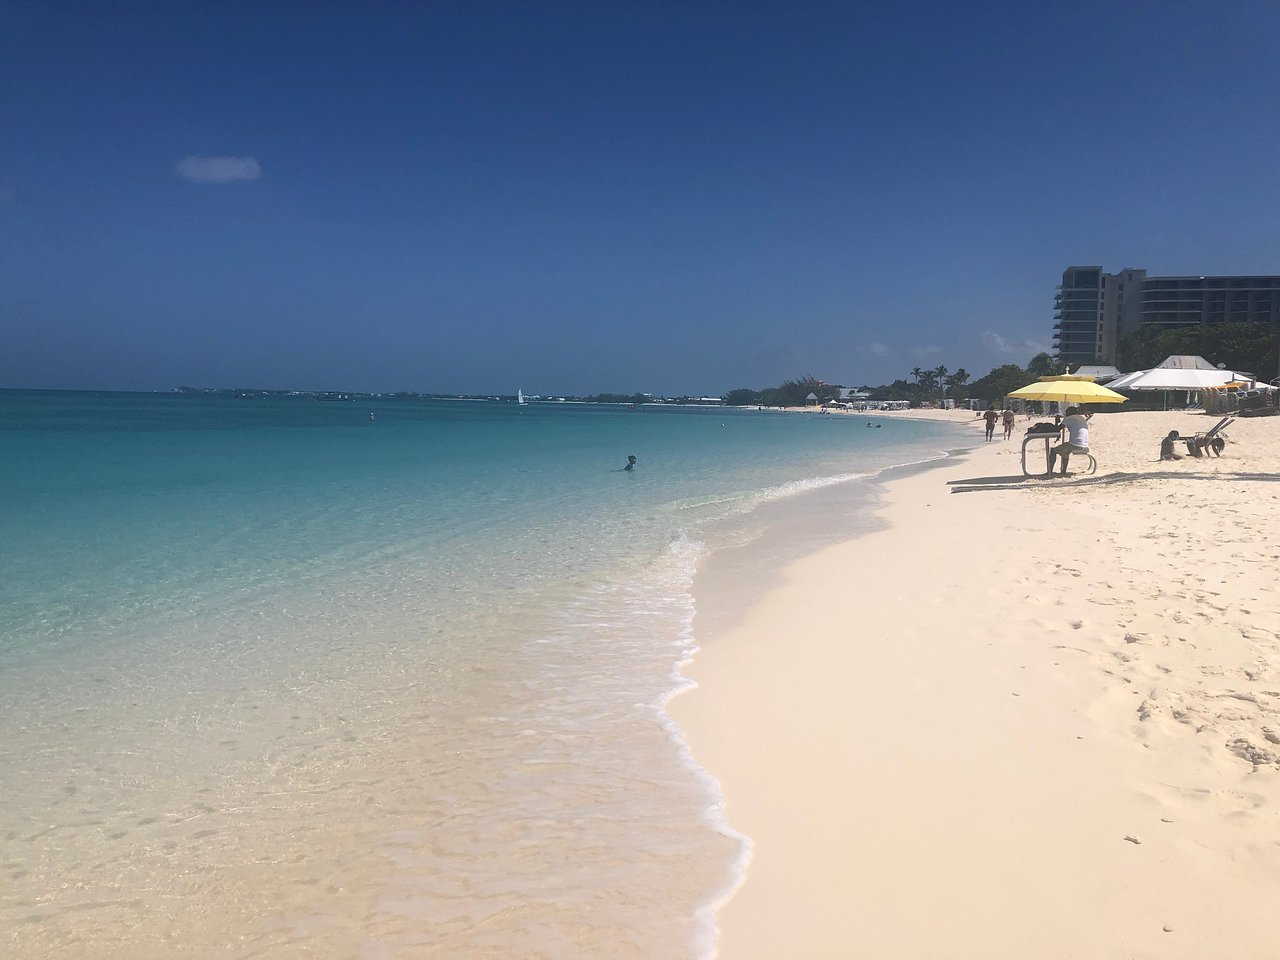 SUNSET HOUSE - Updated 2019 Prices & Resort Reviews (Grand Cayman